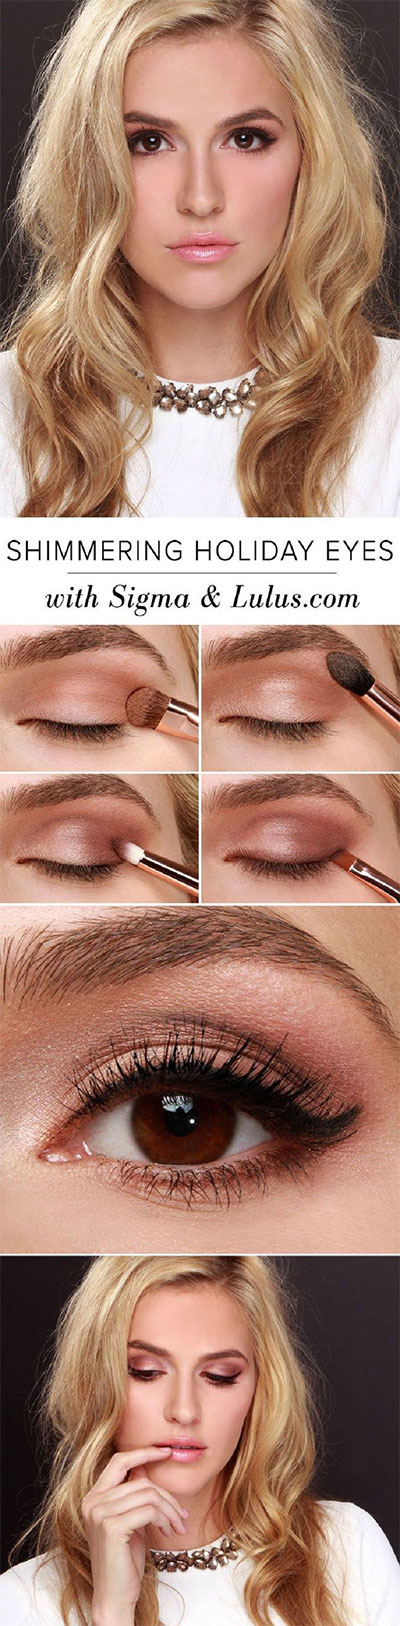 10-Easy-Simple-Winter-Makeup-Tutorials-For-Beginners-Learners-2016-10